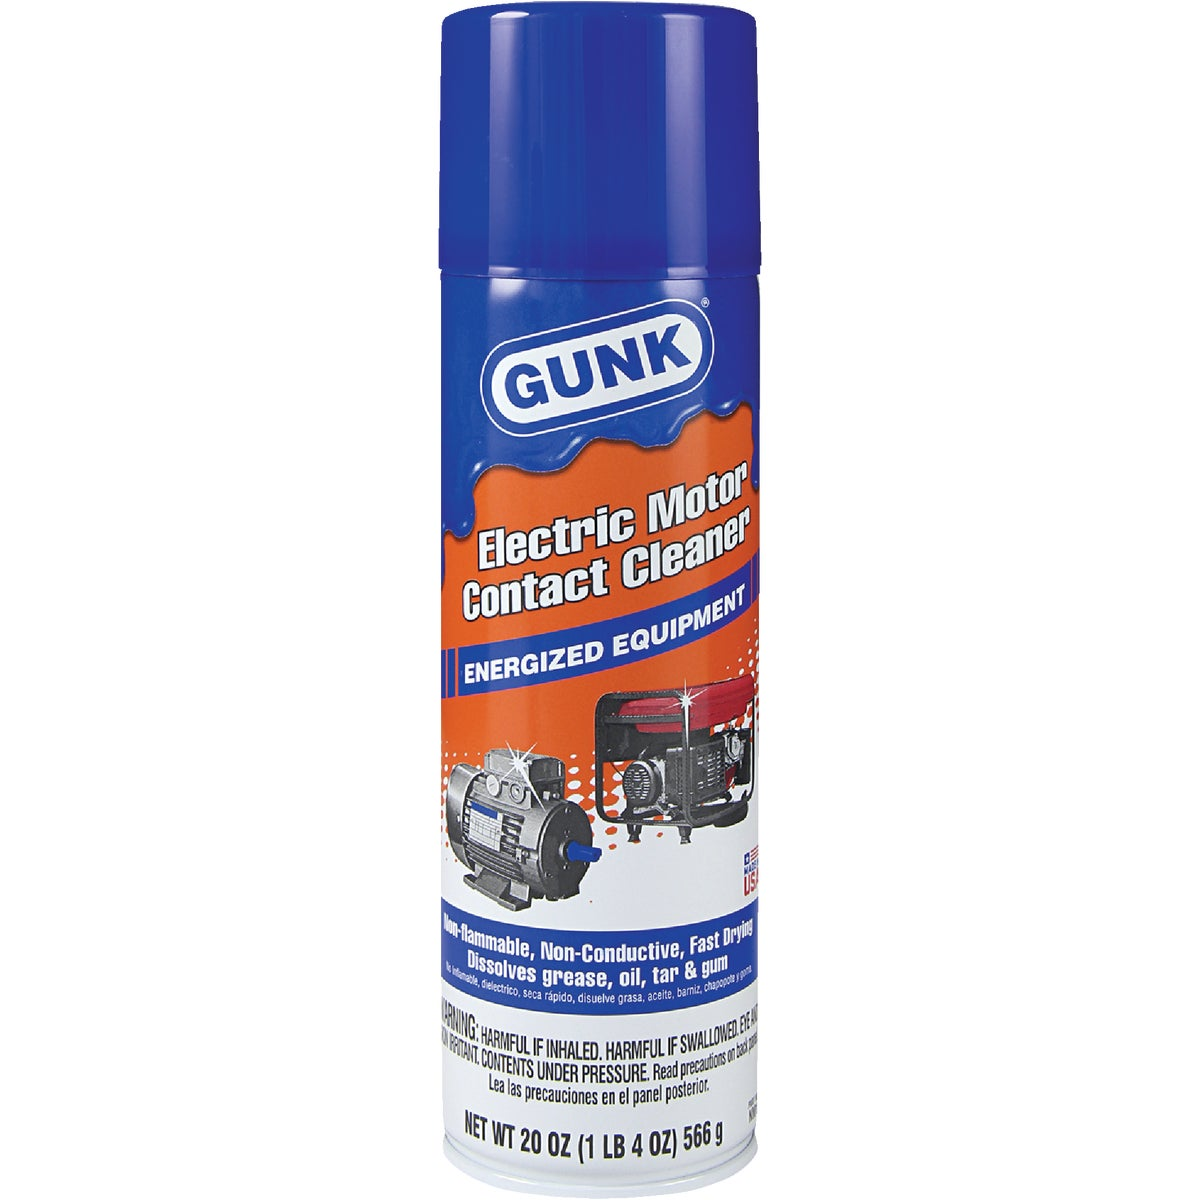 MOTOR/CONTACT CLEANER